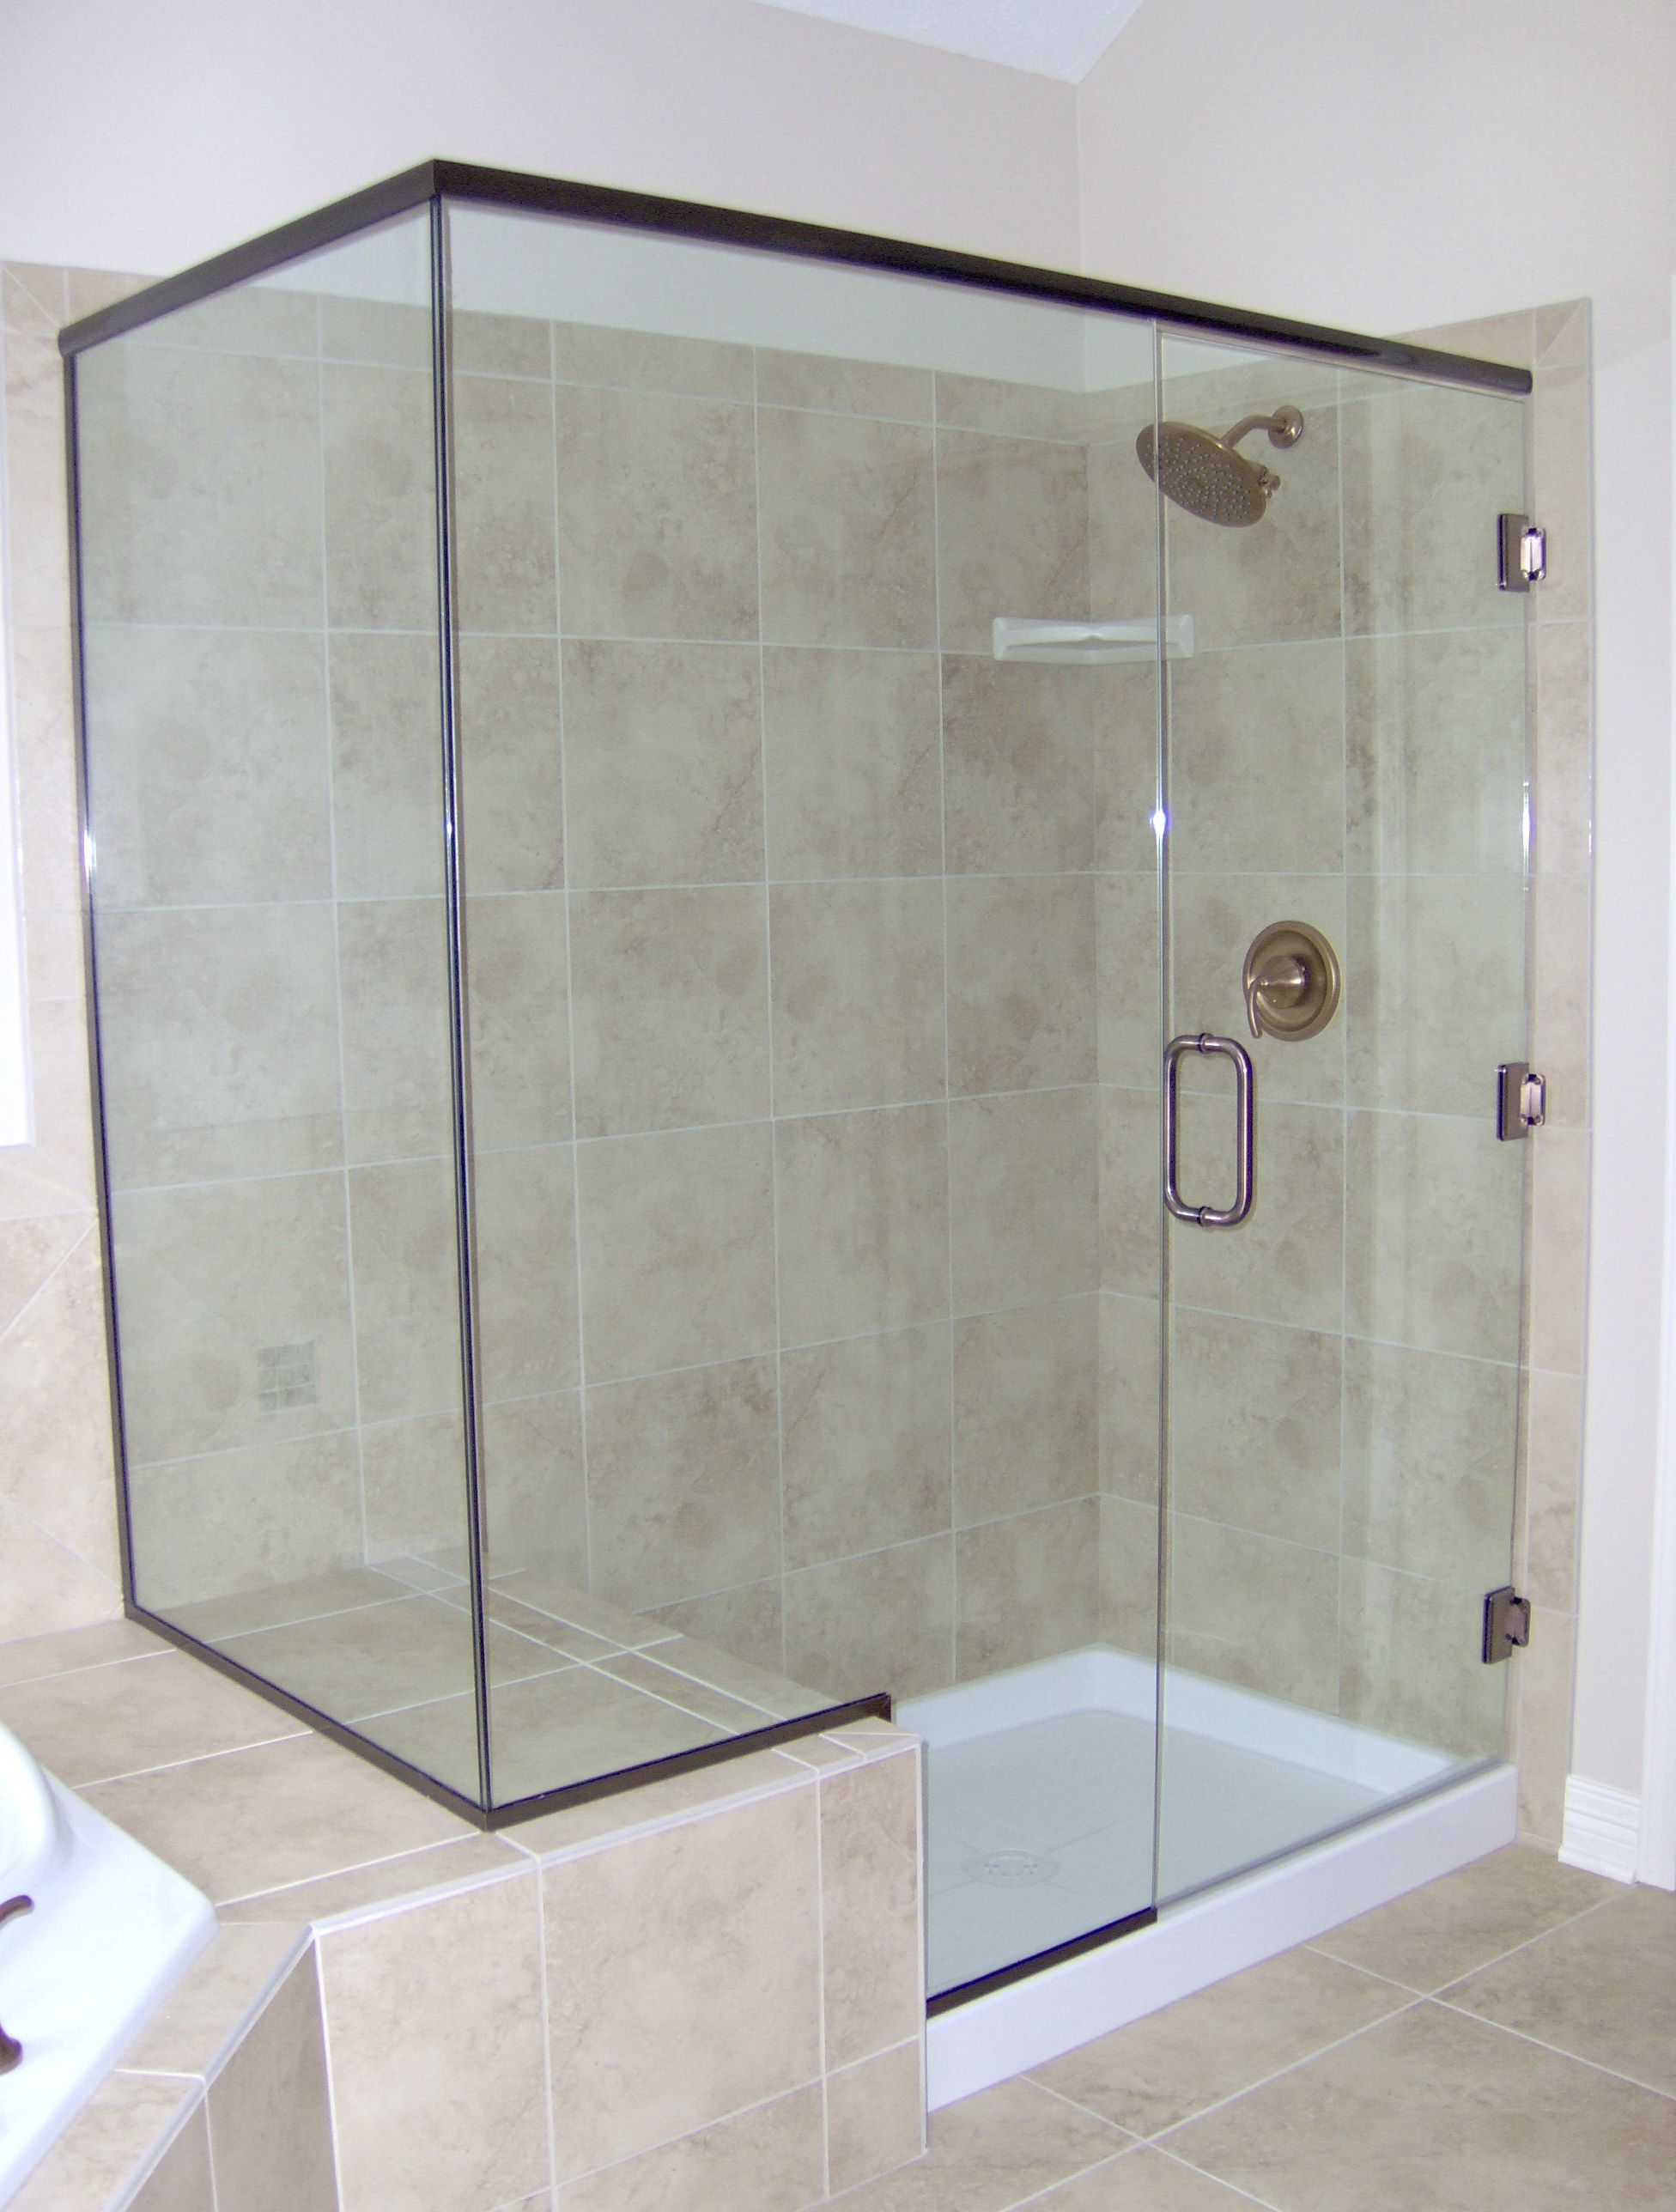 Heavy Glass Shower Enclosure With A Euro Header Glass Shower Enclosures Shower Enclosure Shower Doors